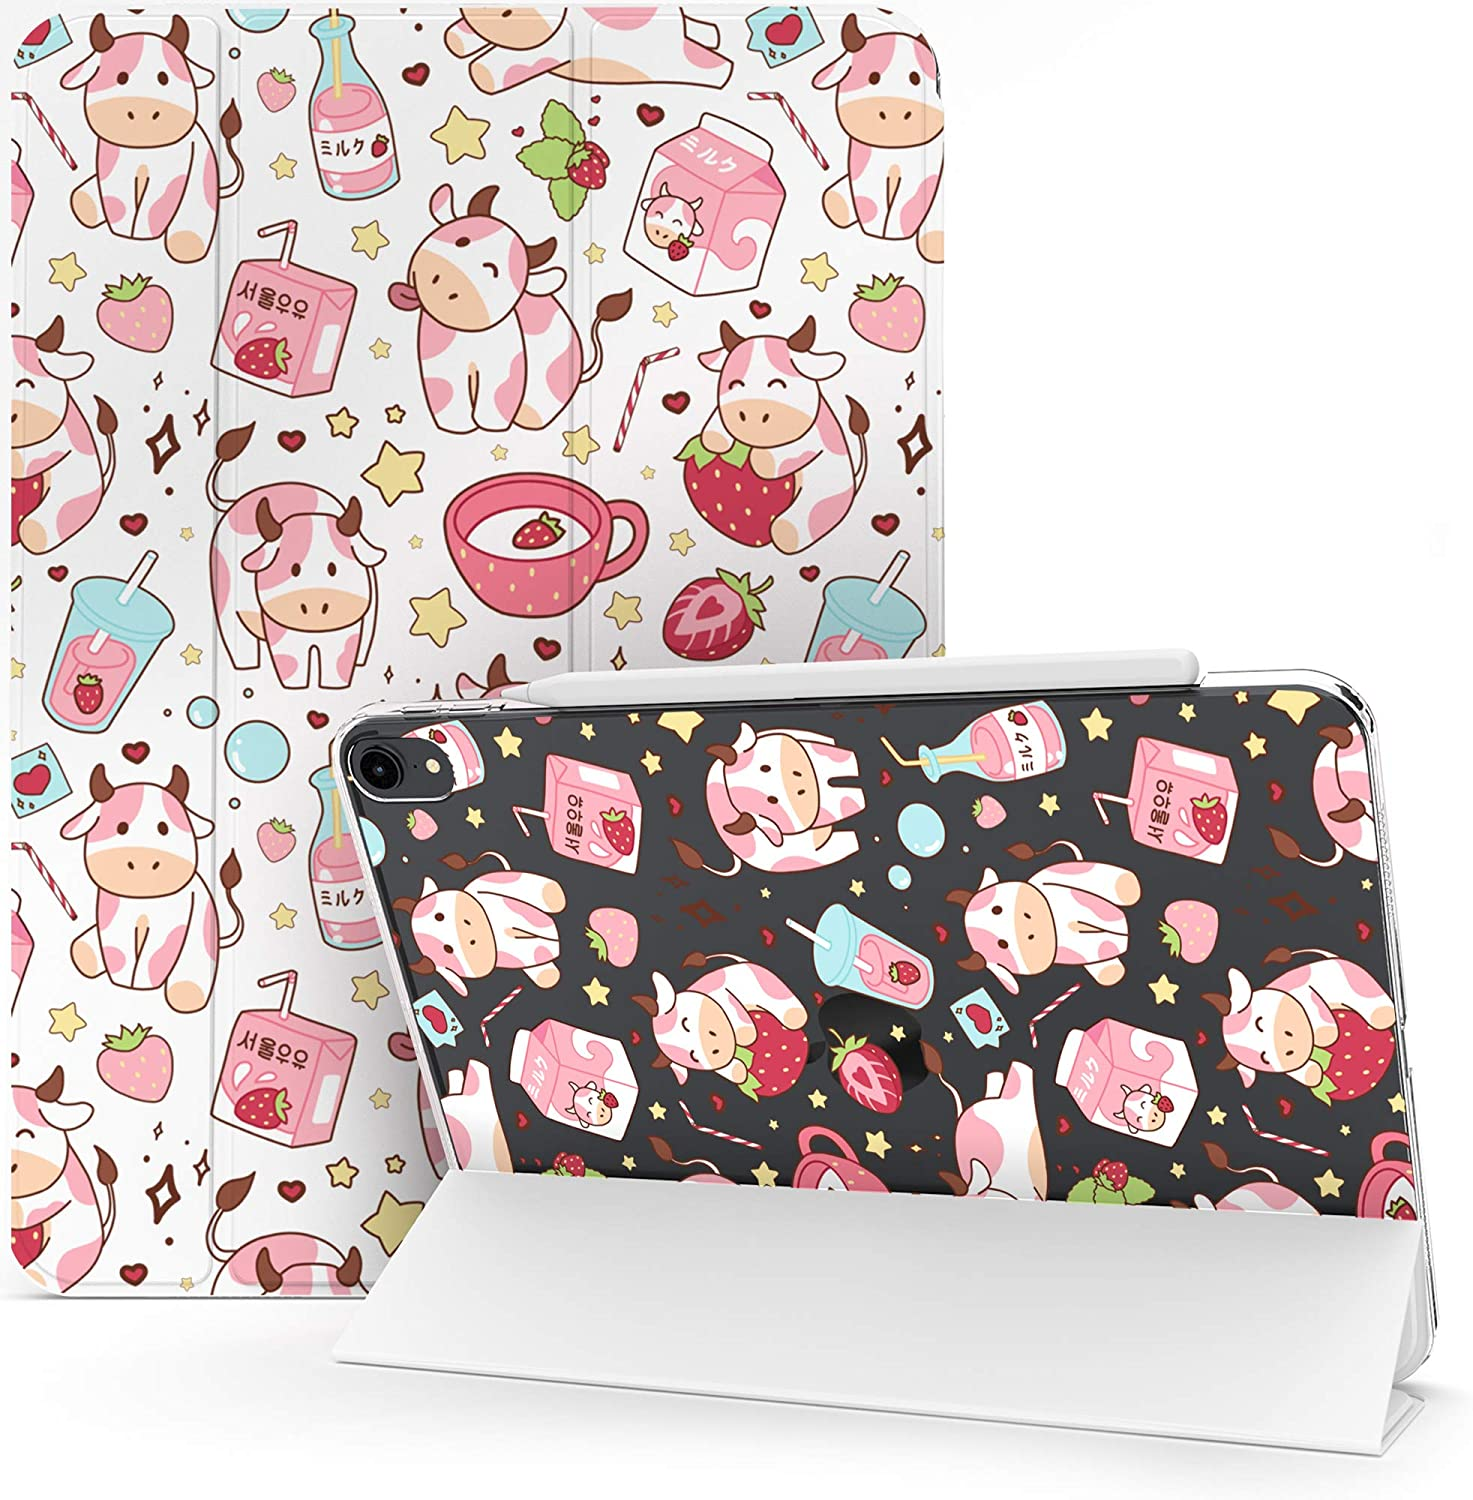 Lex Altern Case Compatible with iPad Pro 12.9 2020 11 Air 4 3 2 10.2 8th Gen 2019 2018 10.5 inch Mini 5 9.7 Clear Korean Kawaii Cow Pink Strawberry Milk Smart Cover Cute Protective Lightweight mch100